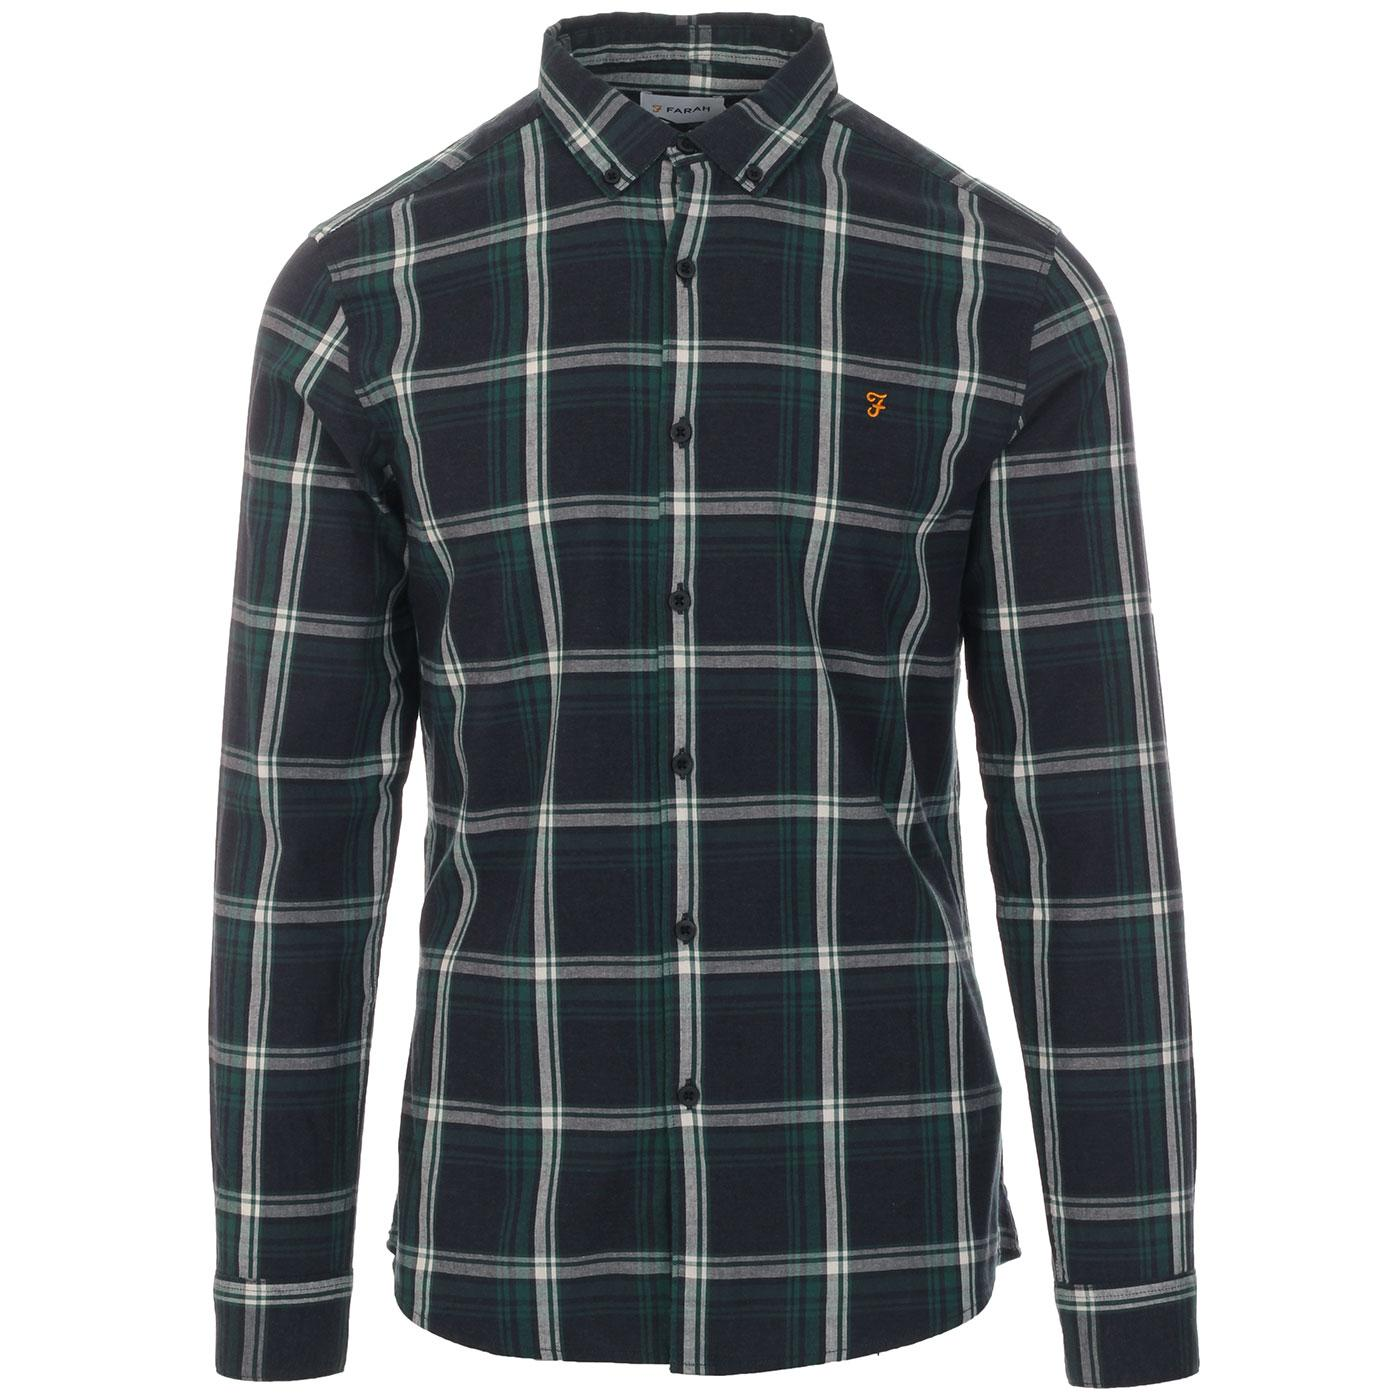 Steen FARAH Retro Mod Button Down Check Shirt (TB)